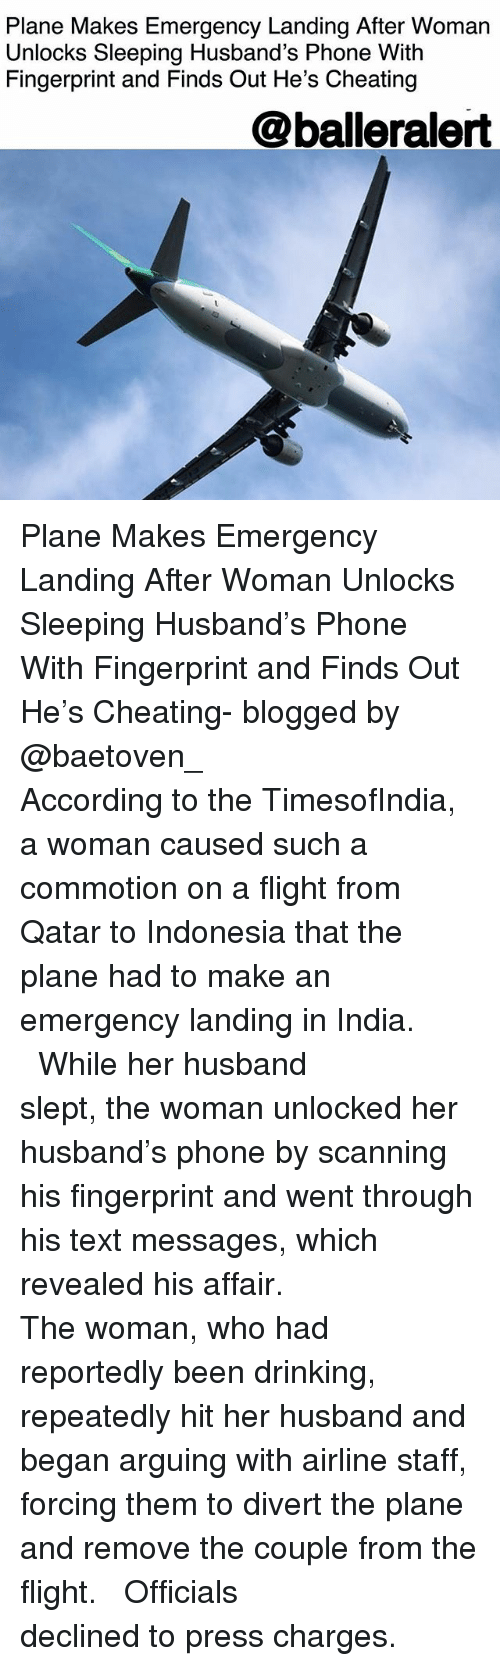 Cheating, Drinking, and Memes: Plane Makes Emergency Landing After Womarn  Unlocks Sleeping Husband's Phone With  Fingerprint and Finds Out He's Cheating  @balleralert Plane Makes Emergency Landing After Woman Unlocks Sleeping Husband's Phone With Fingerprint and Finds Out He's Cheating- blogged by @baetoven_ ⠀⠀⠀⠀⠀⠀⠀ ⠀⠀⠀⠀⠀⠀⠀ According to the TimesofIndia, a woman caused such a commotion on a flight from Qatar to Indonesia that the plane had to make an emergency landing in India. ⠀⠀⠀⠀⠀⠀⠀ ⠀⠀⠀⠀⠀⠀⠀ While her husband slept, the woman unlocked her husband's phone by scanning his fingerprint and went through his text messages, which revealed his affair. ⠀⠀⠀⠀⠀⠀⠀ ⠀⠀⠀⠀⠀⠀⠀ The woman, who had reportedly been drinking, repeatedly hit her husband and began arguing with airline staff, forcing them to divert the plane and remove the couple from the flight. ⠀⠀⠀⠀⠀⠀⠀ ⠀⠀⠀⠀⠀⠀⠀ Officials declined to press charges.